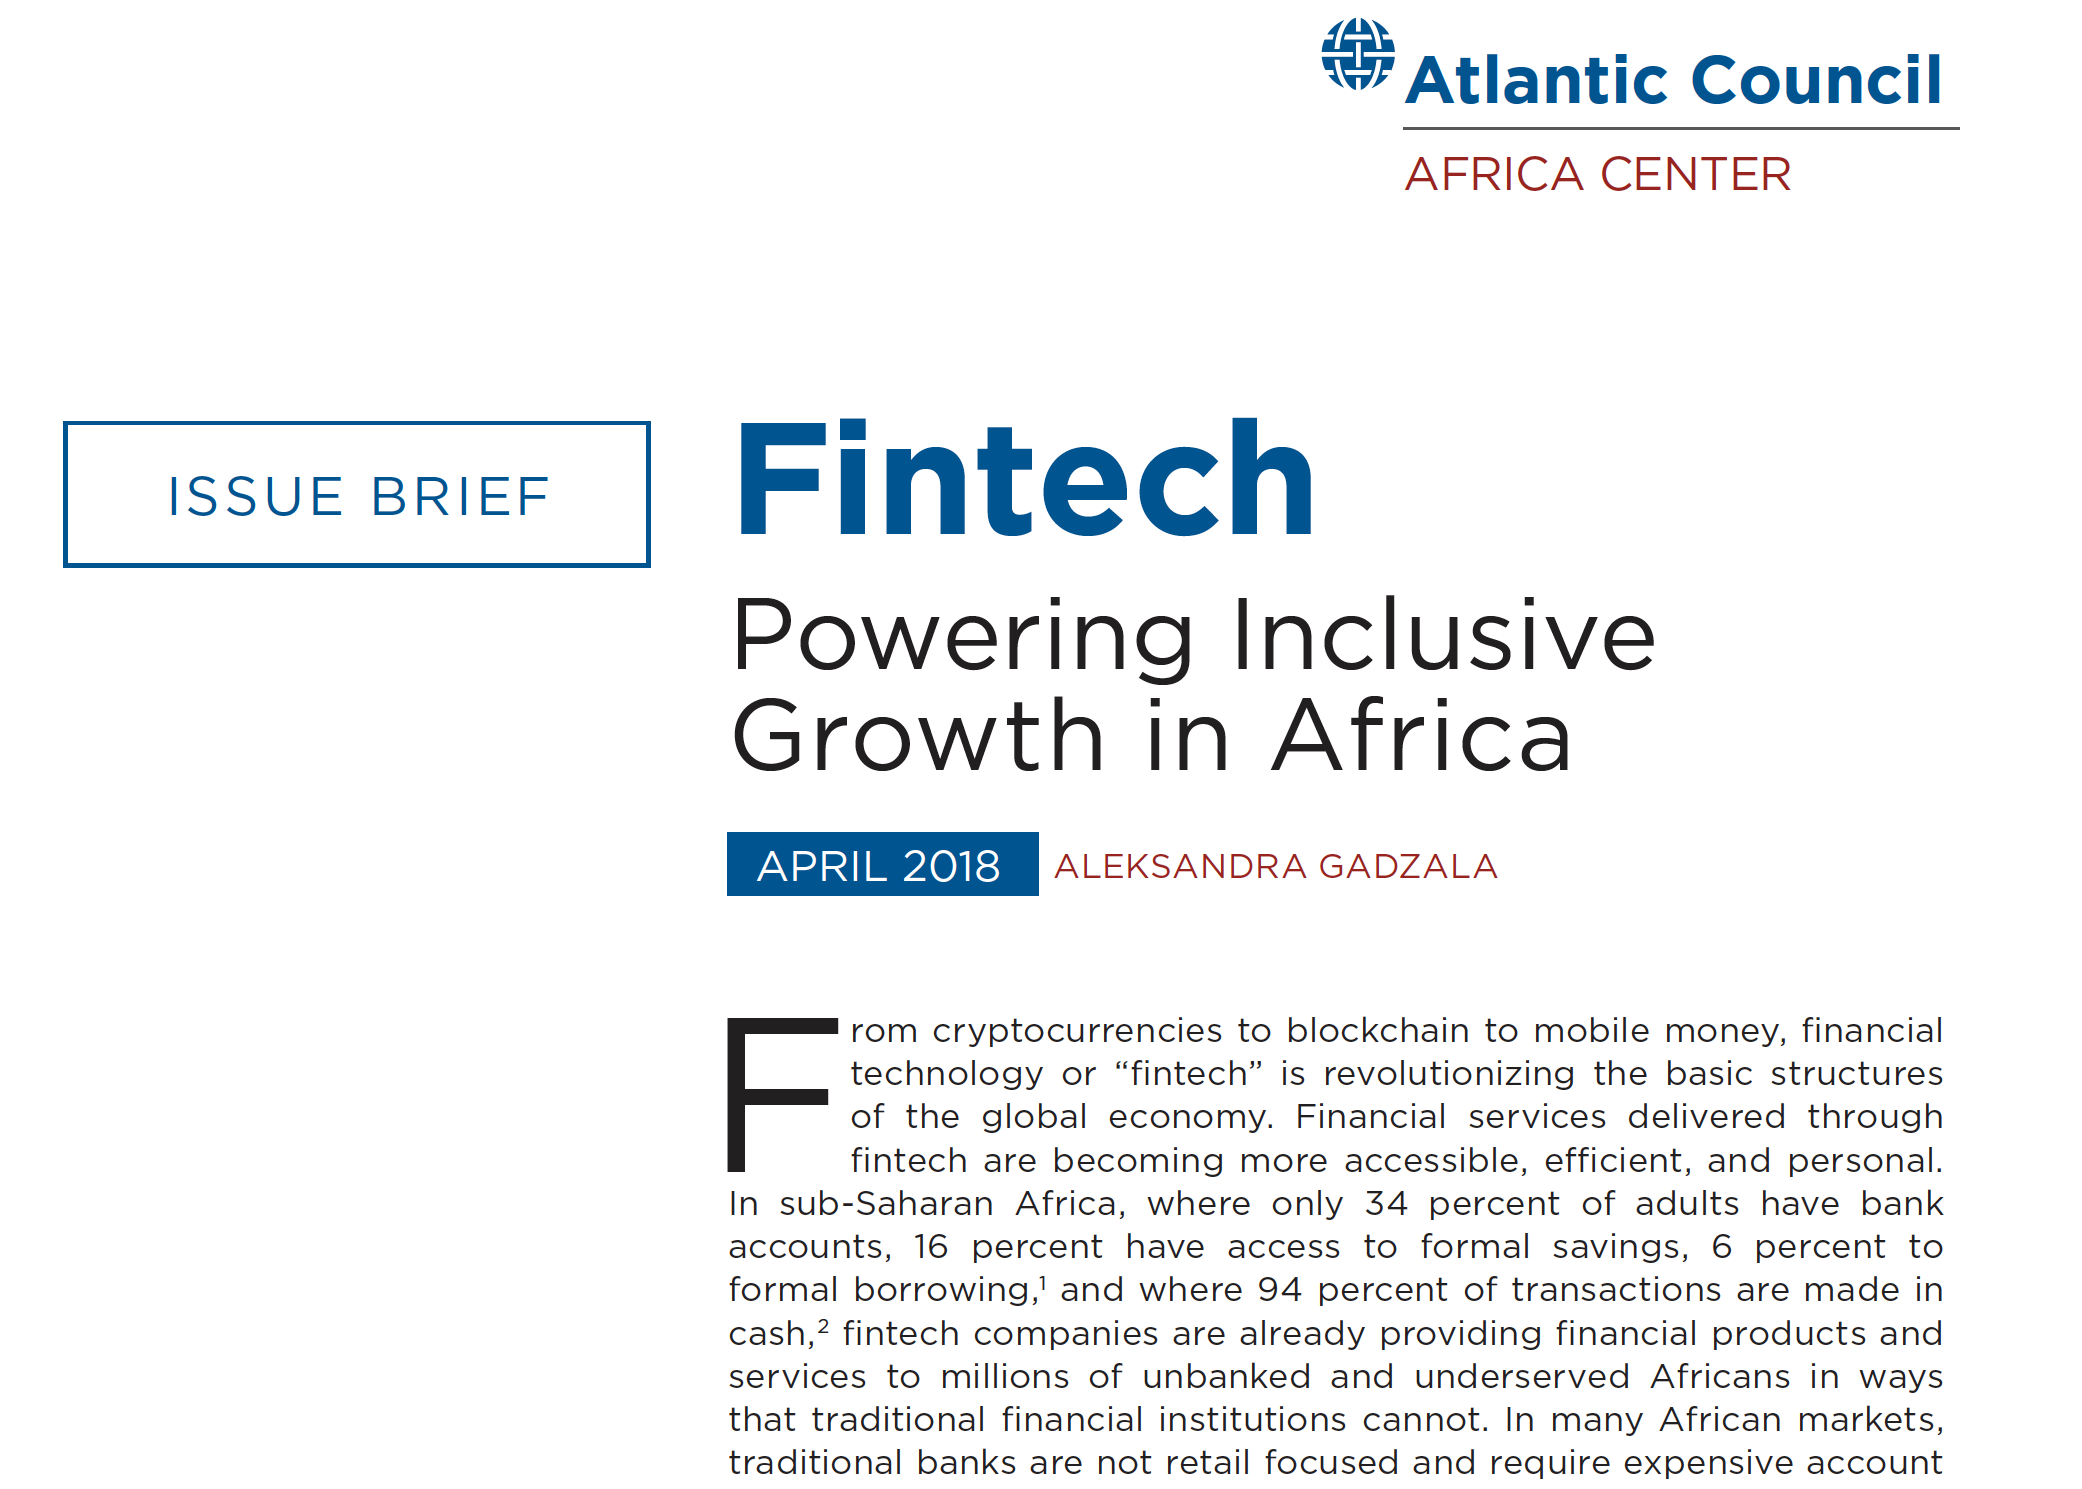 How is fintech evolving in African markets and what factors are necessary for its success?